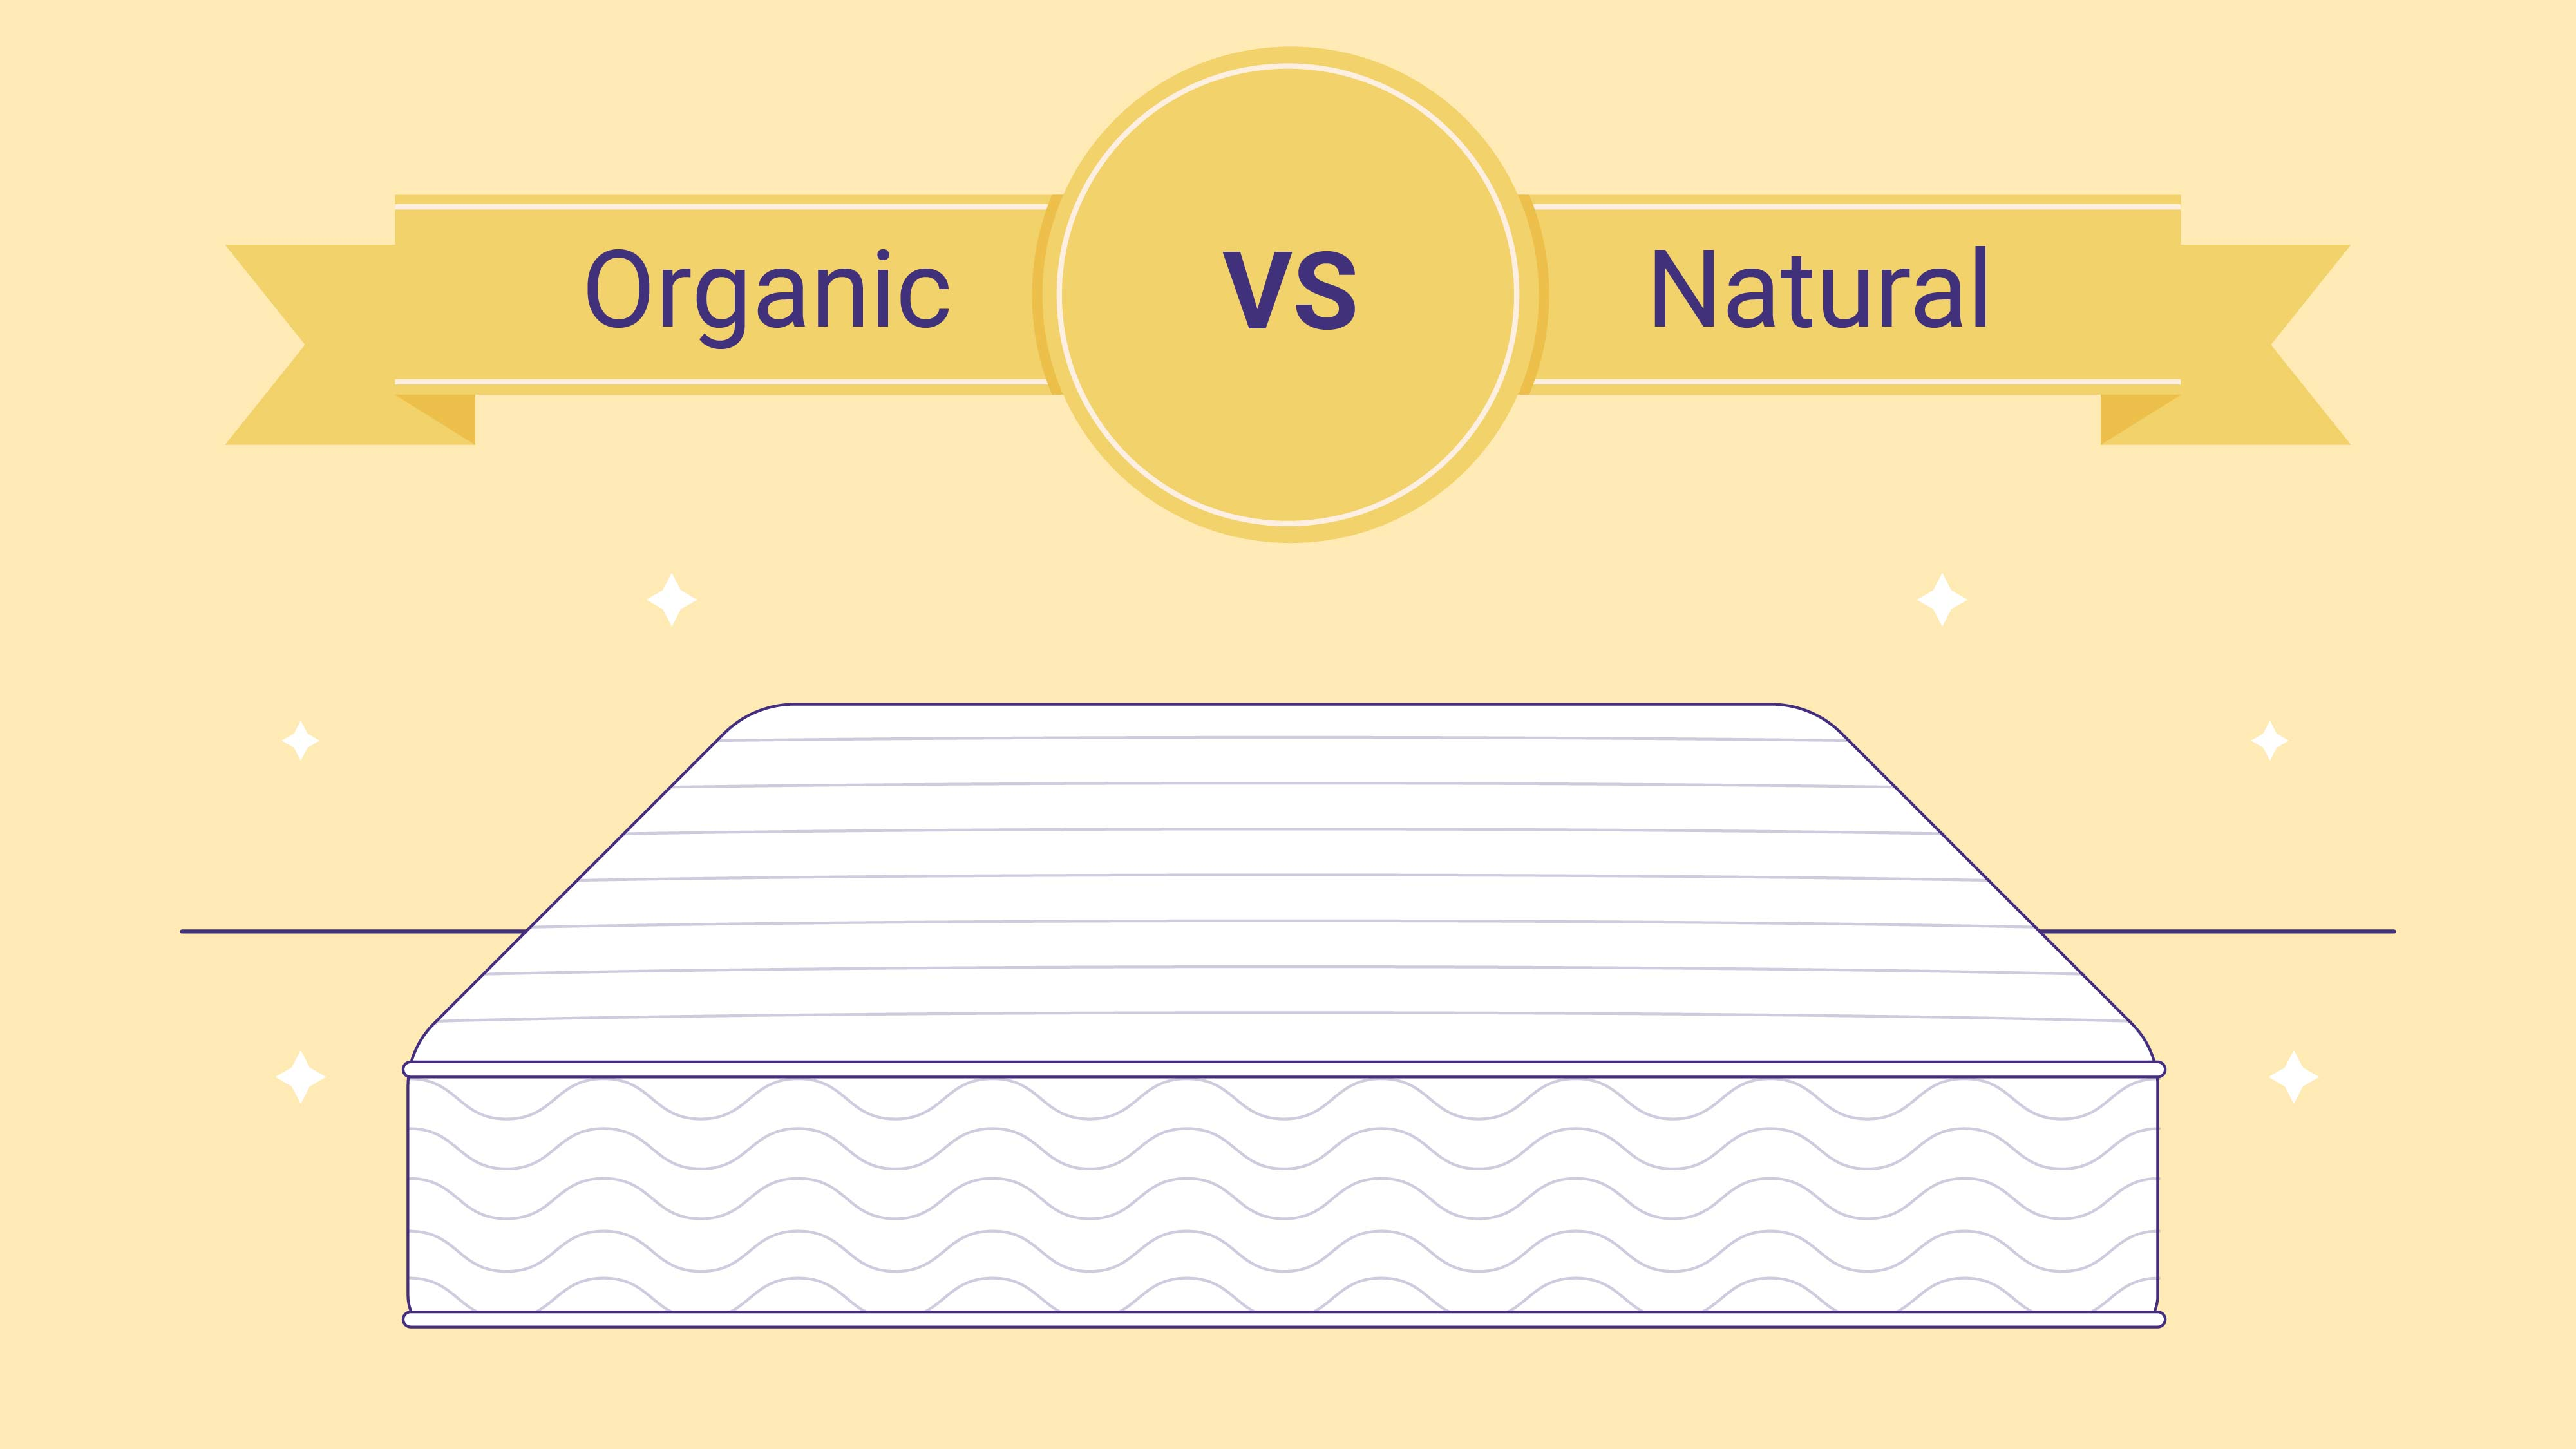 Organic vs. Natural Mattress: What's the Difference?